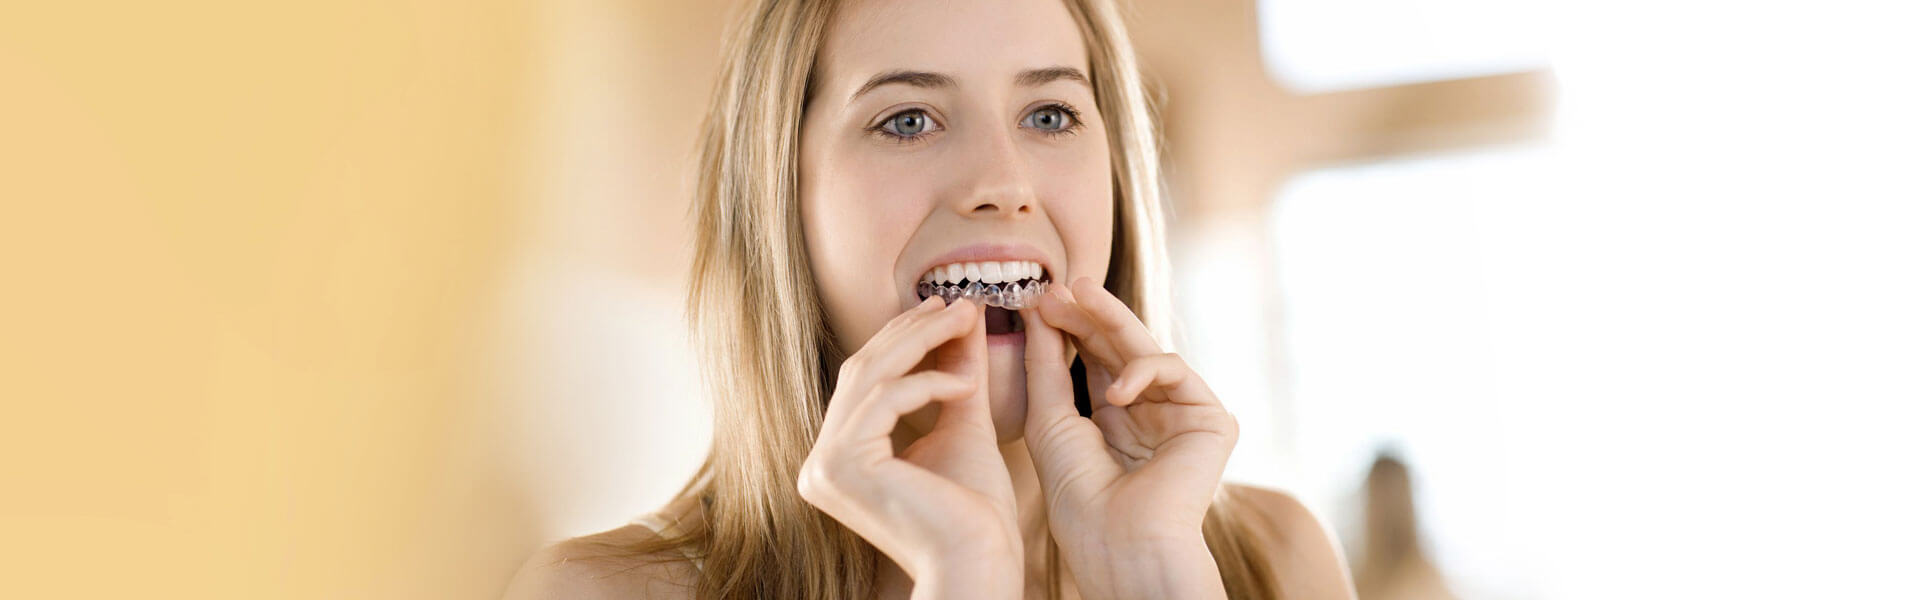 Invisalign® Clear Teeth Straightening in Sarasota, FL